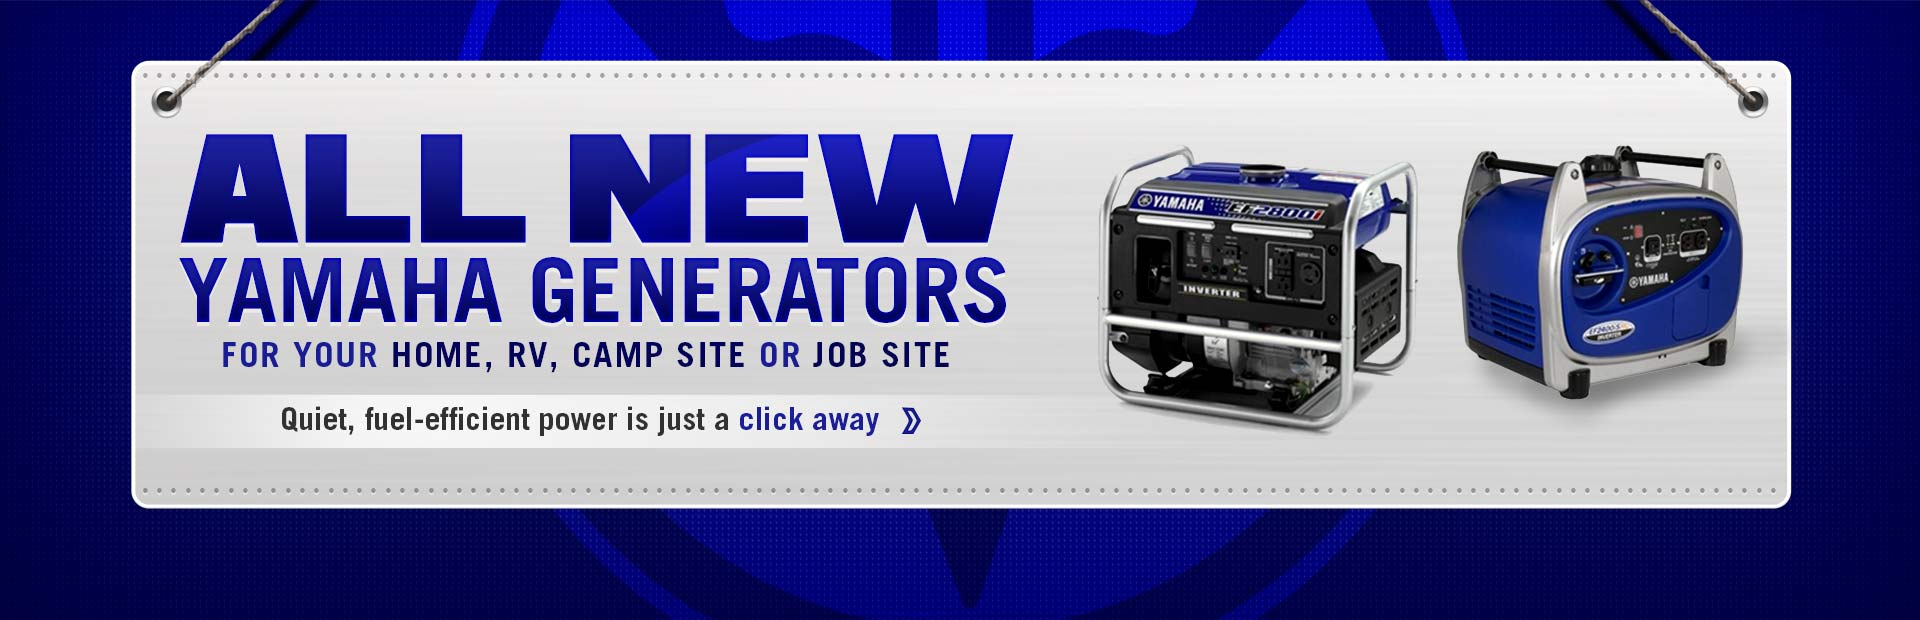 Click here to view new Yamaha generators.